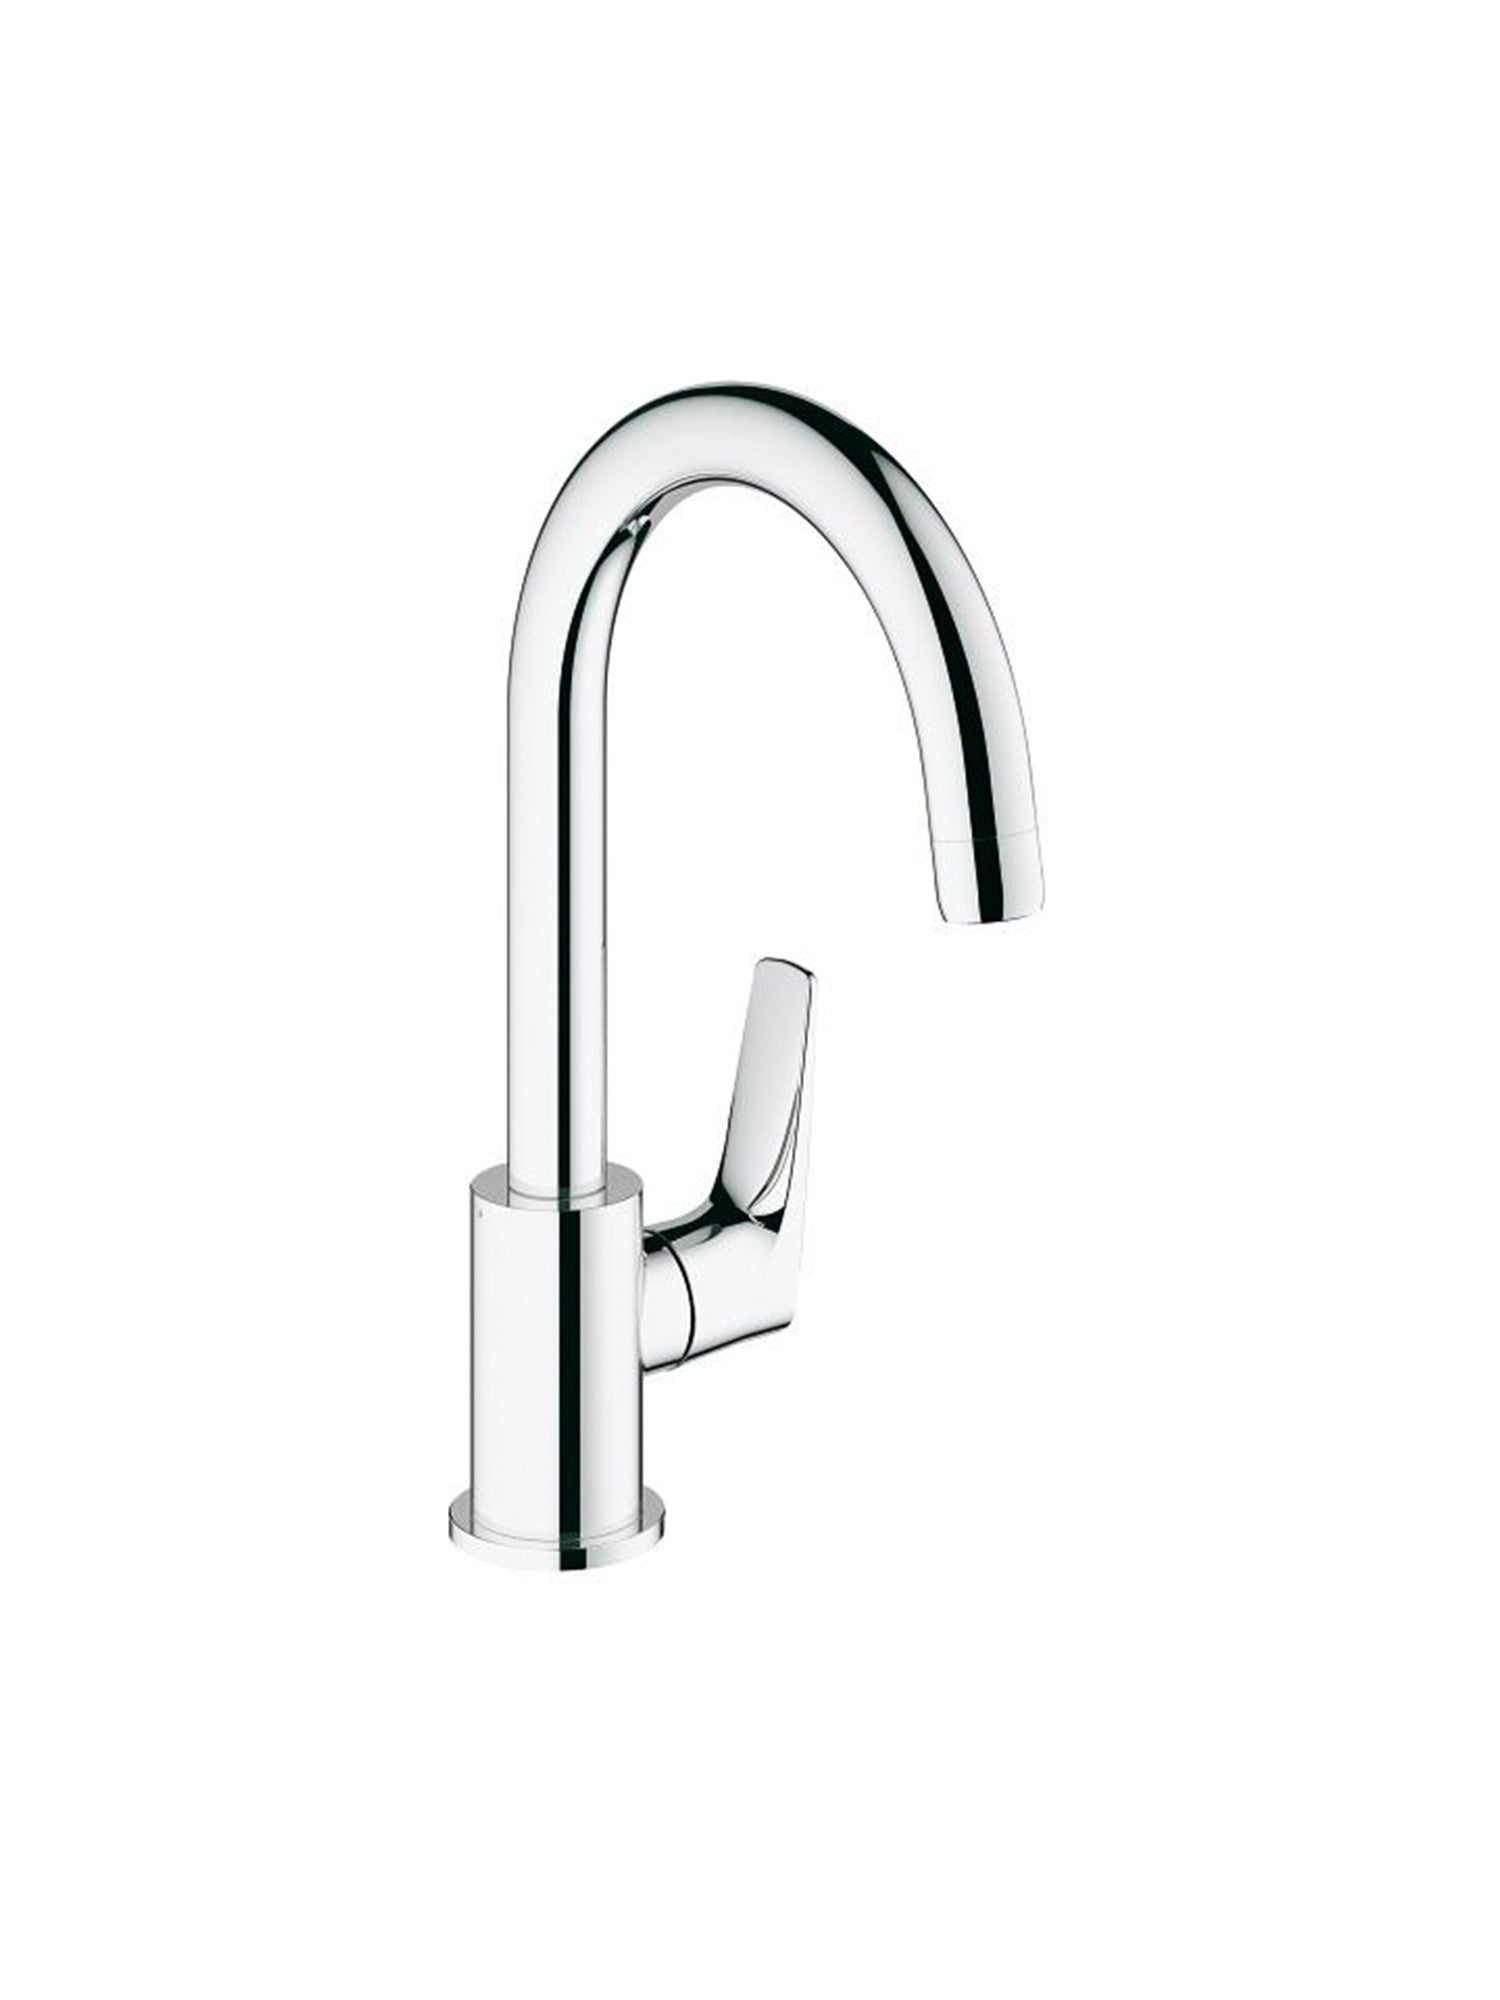 BauFlow Pillar Tap Sink #31220000